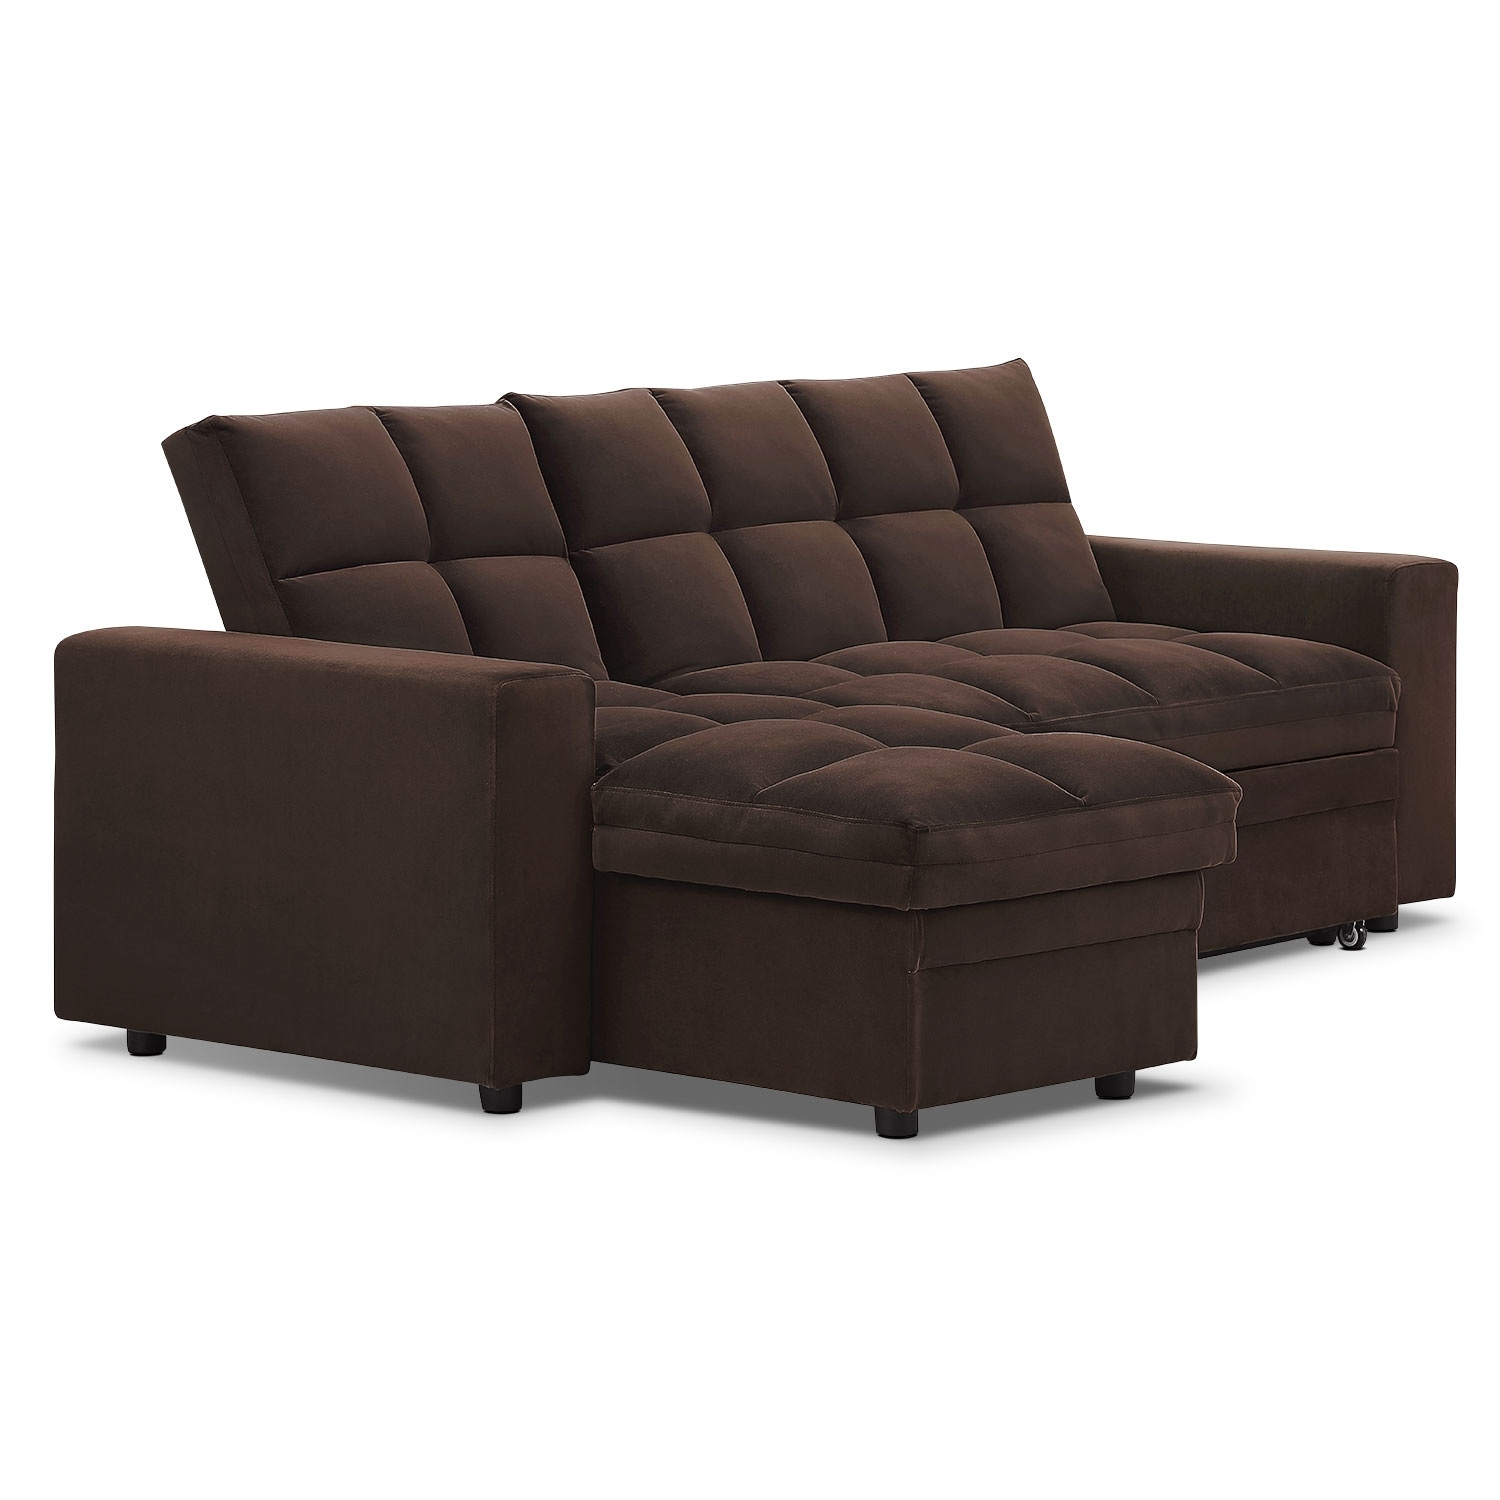 Metro chaise sofa bed with storage brown value city for Brown chaise sofa bed